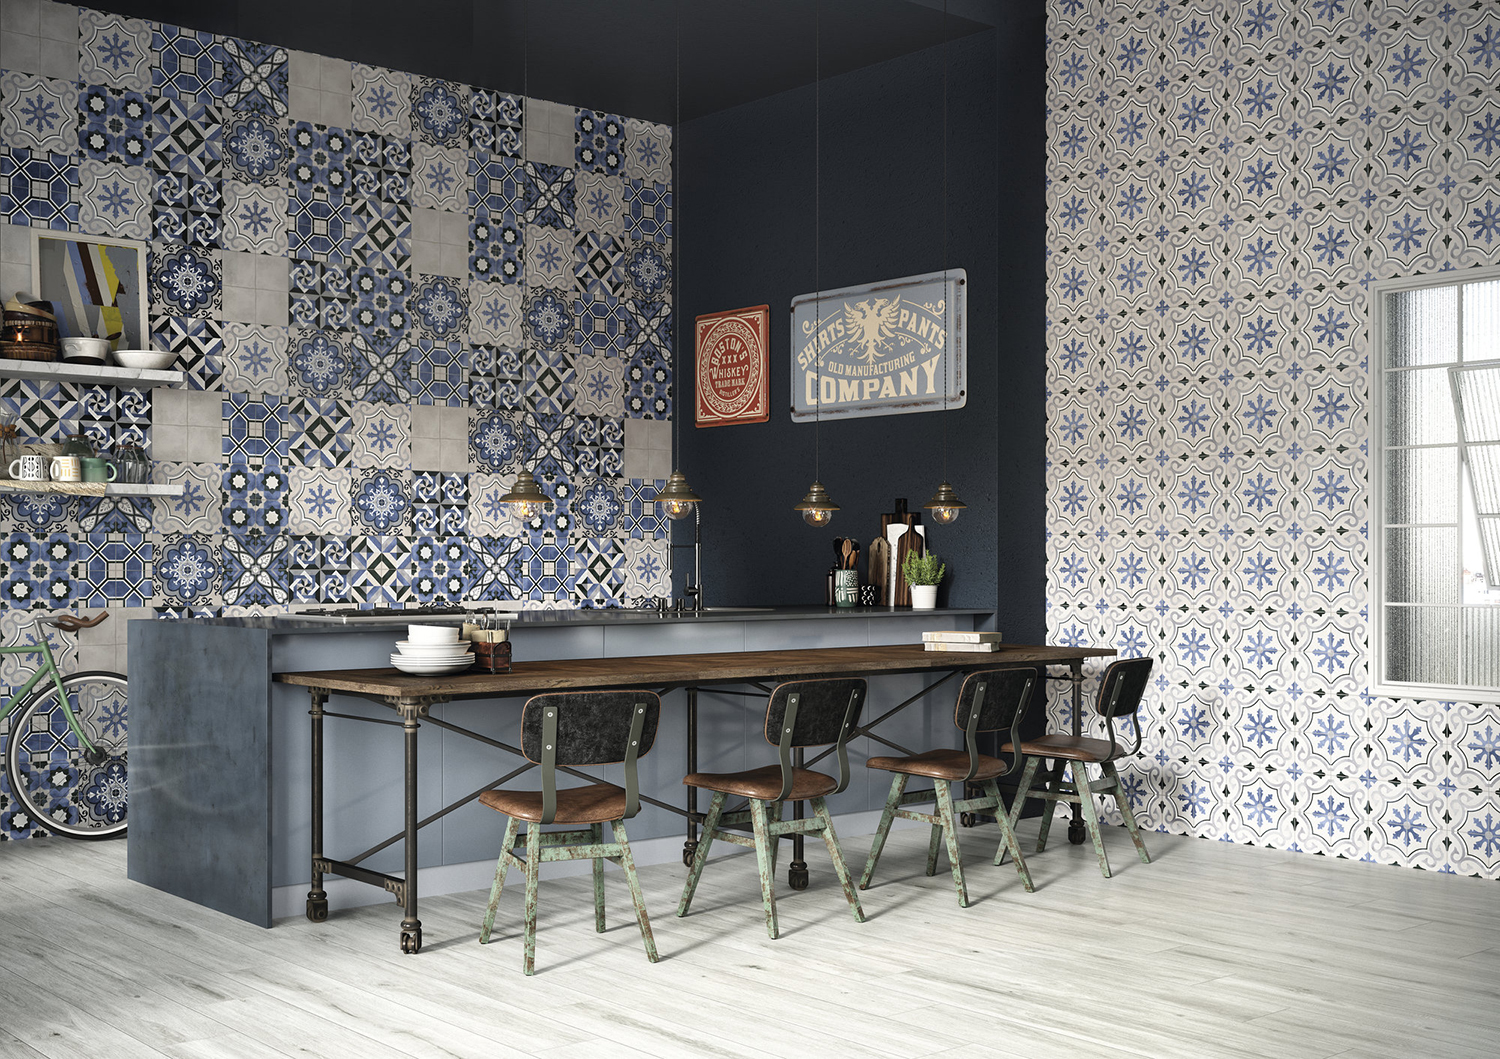 Matt Porcelain Tiles